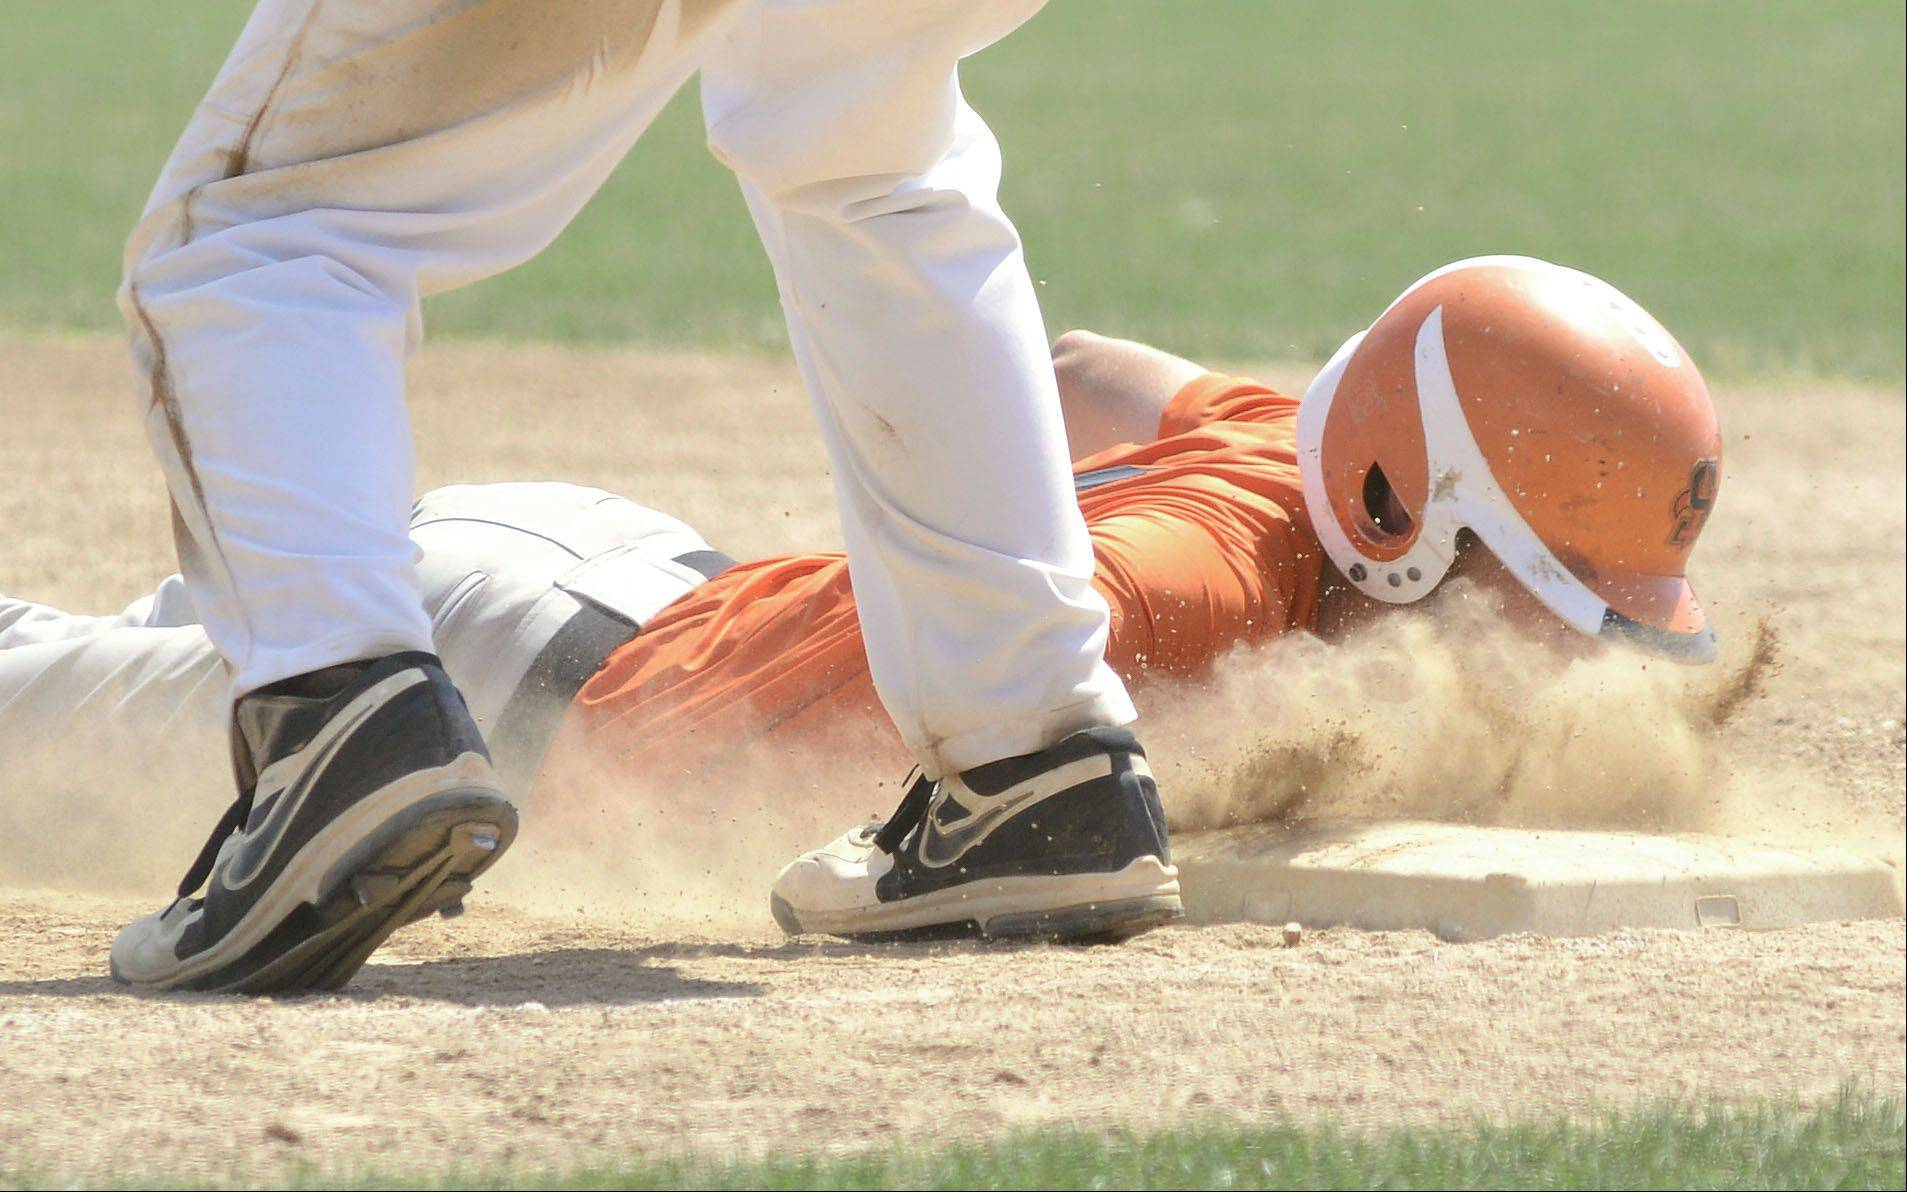 St. Charles East's Alex Abate slides face first back to first base safe from St. Charles North's Joe Kuczek in the third inning of the St. Charles East summer tournament semifinals on Wednesday, July 17.